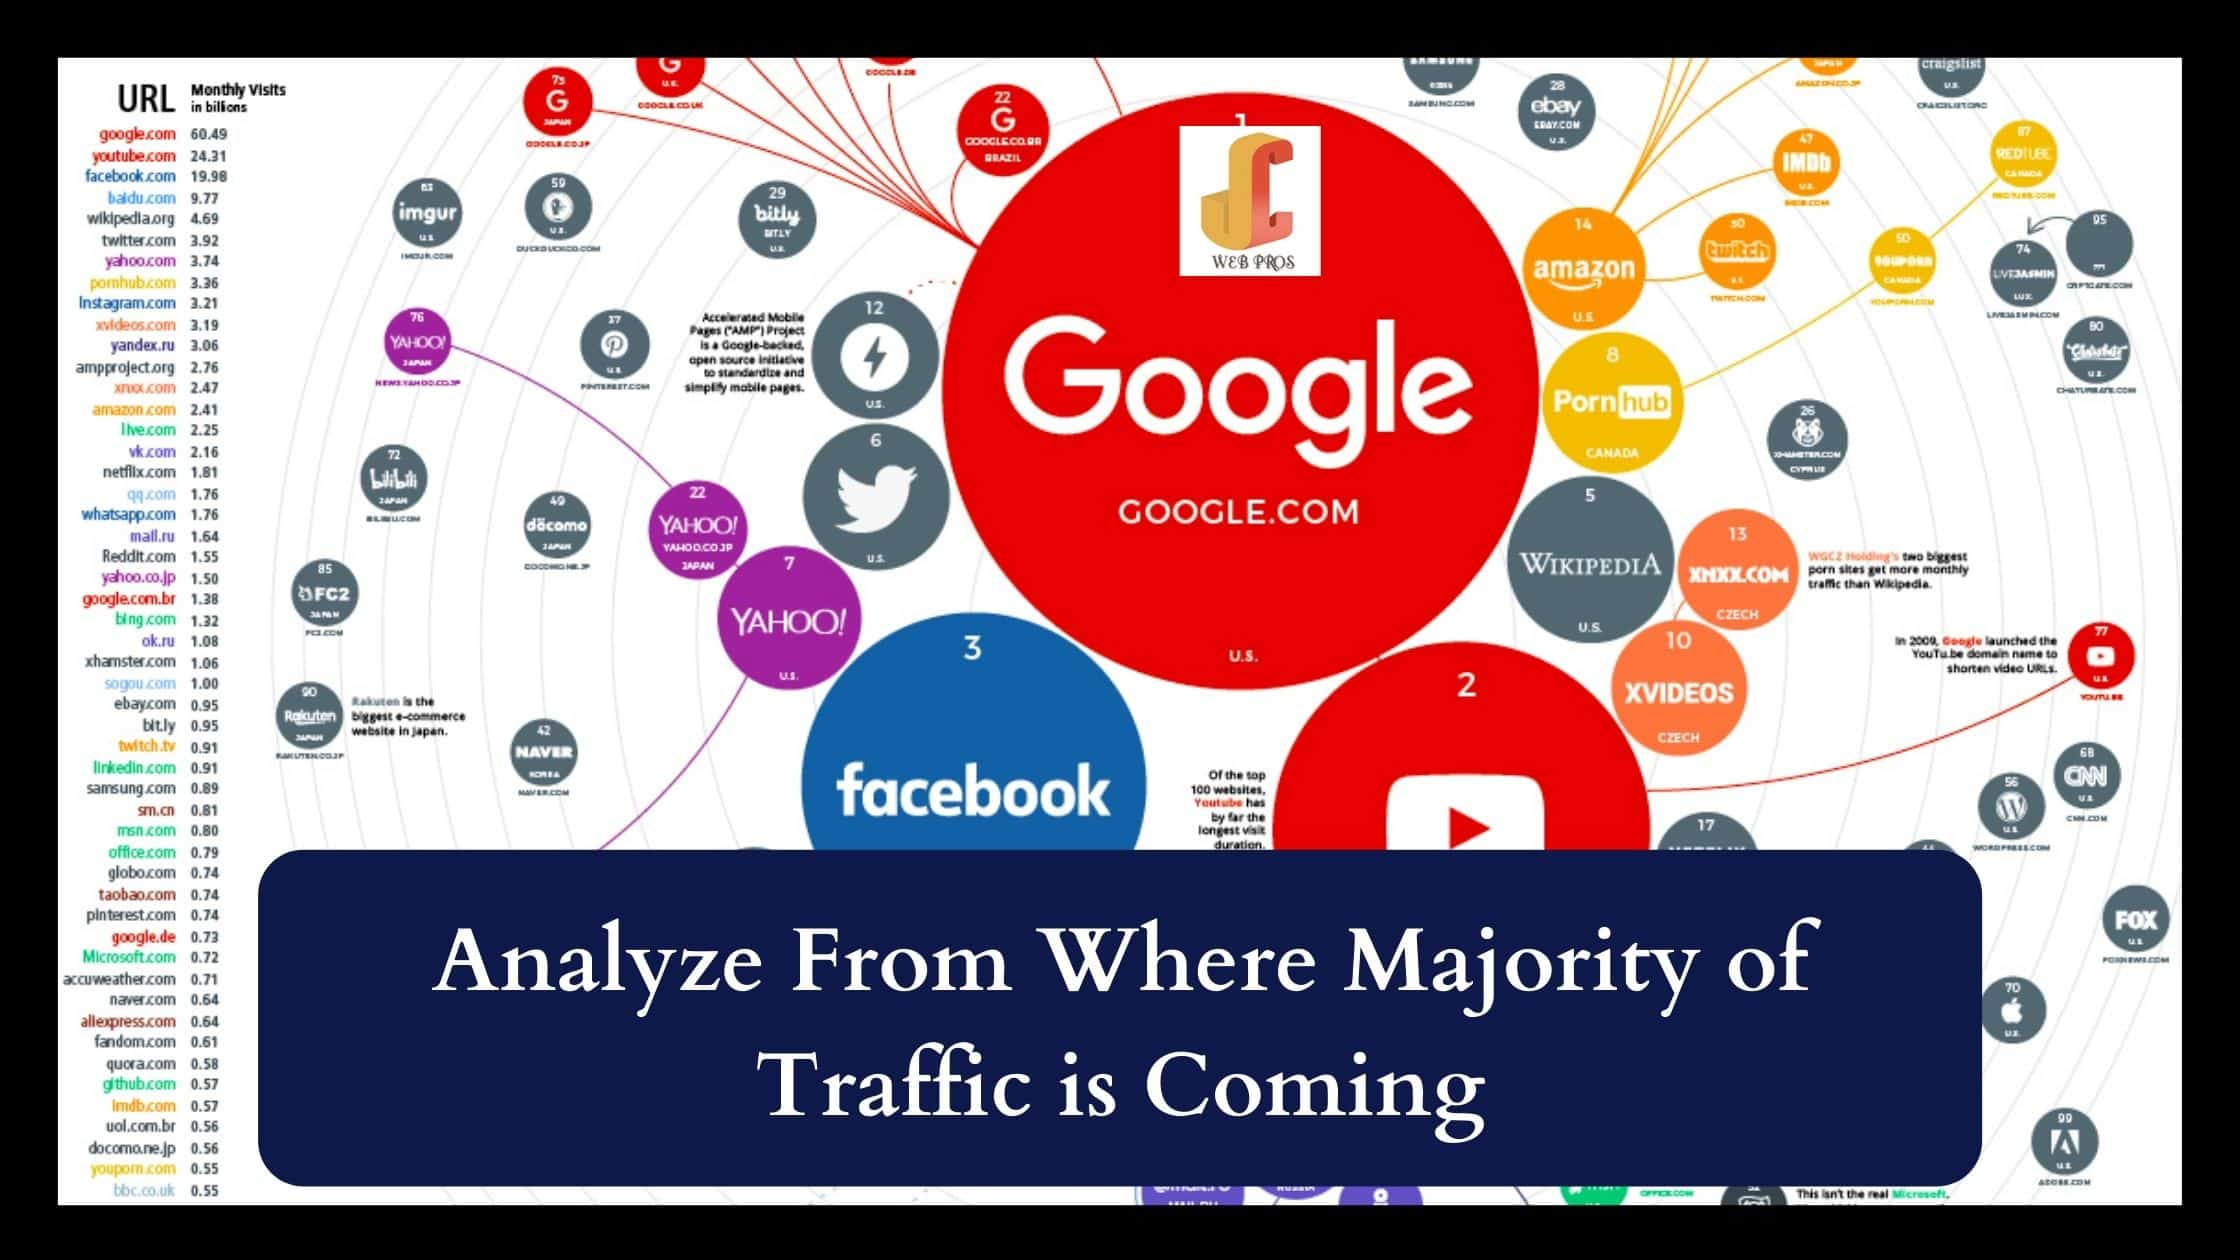 Analyze From Where Majority of Traffic is Coming